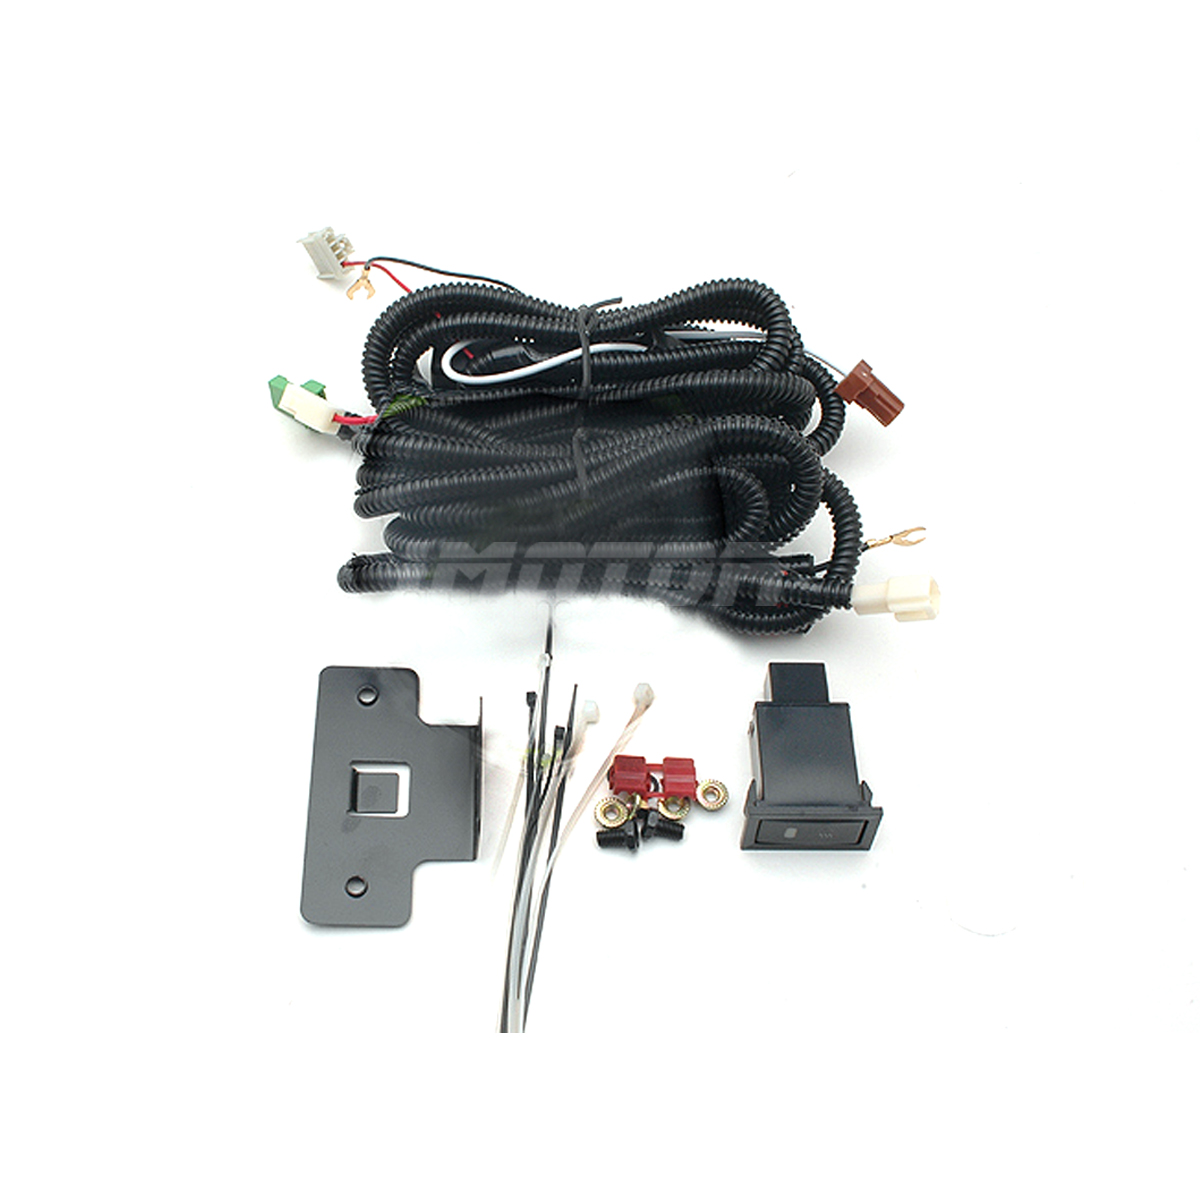 Jack Wiring Diagram On Wiring Harness For 2006 Toyota Corolla